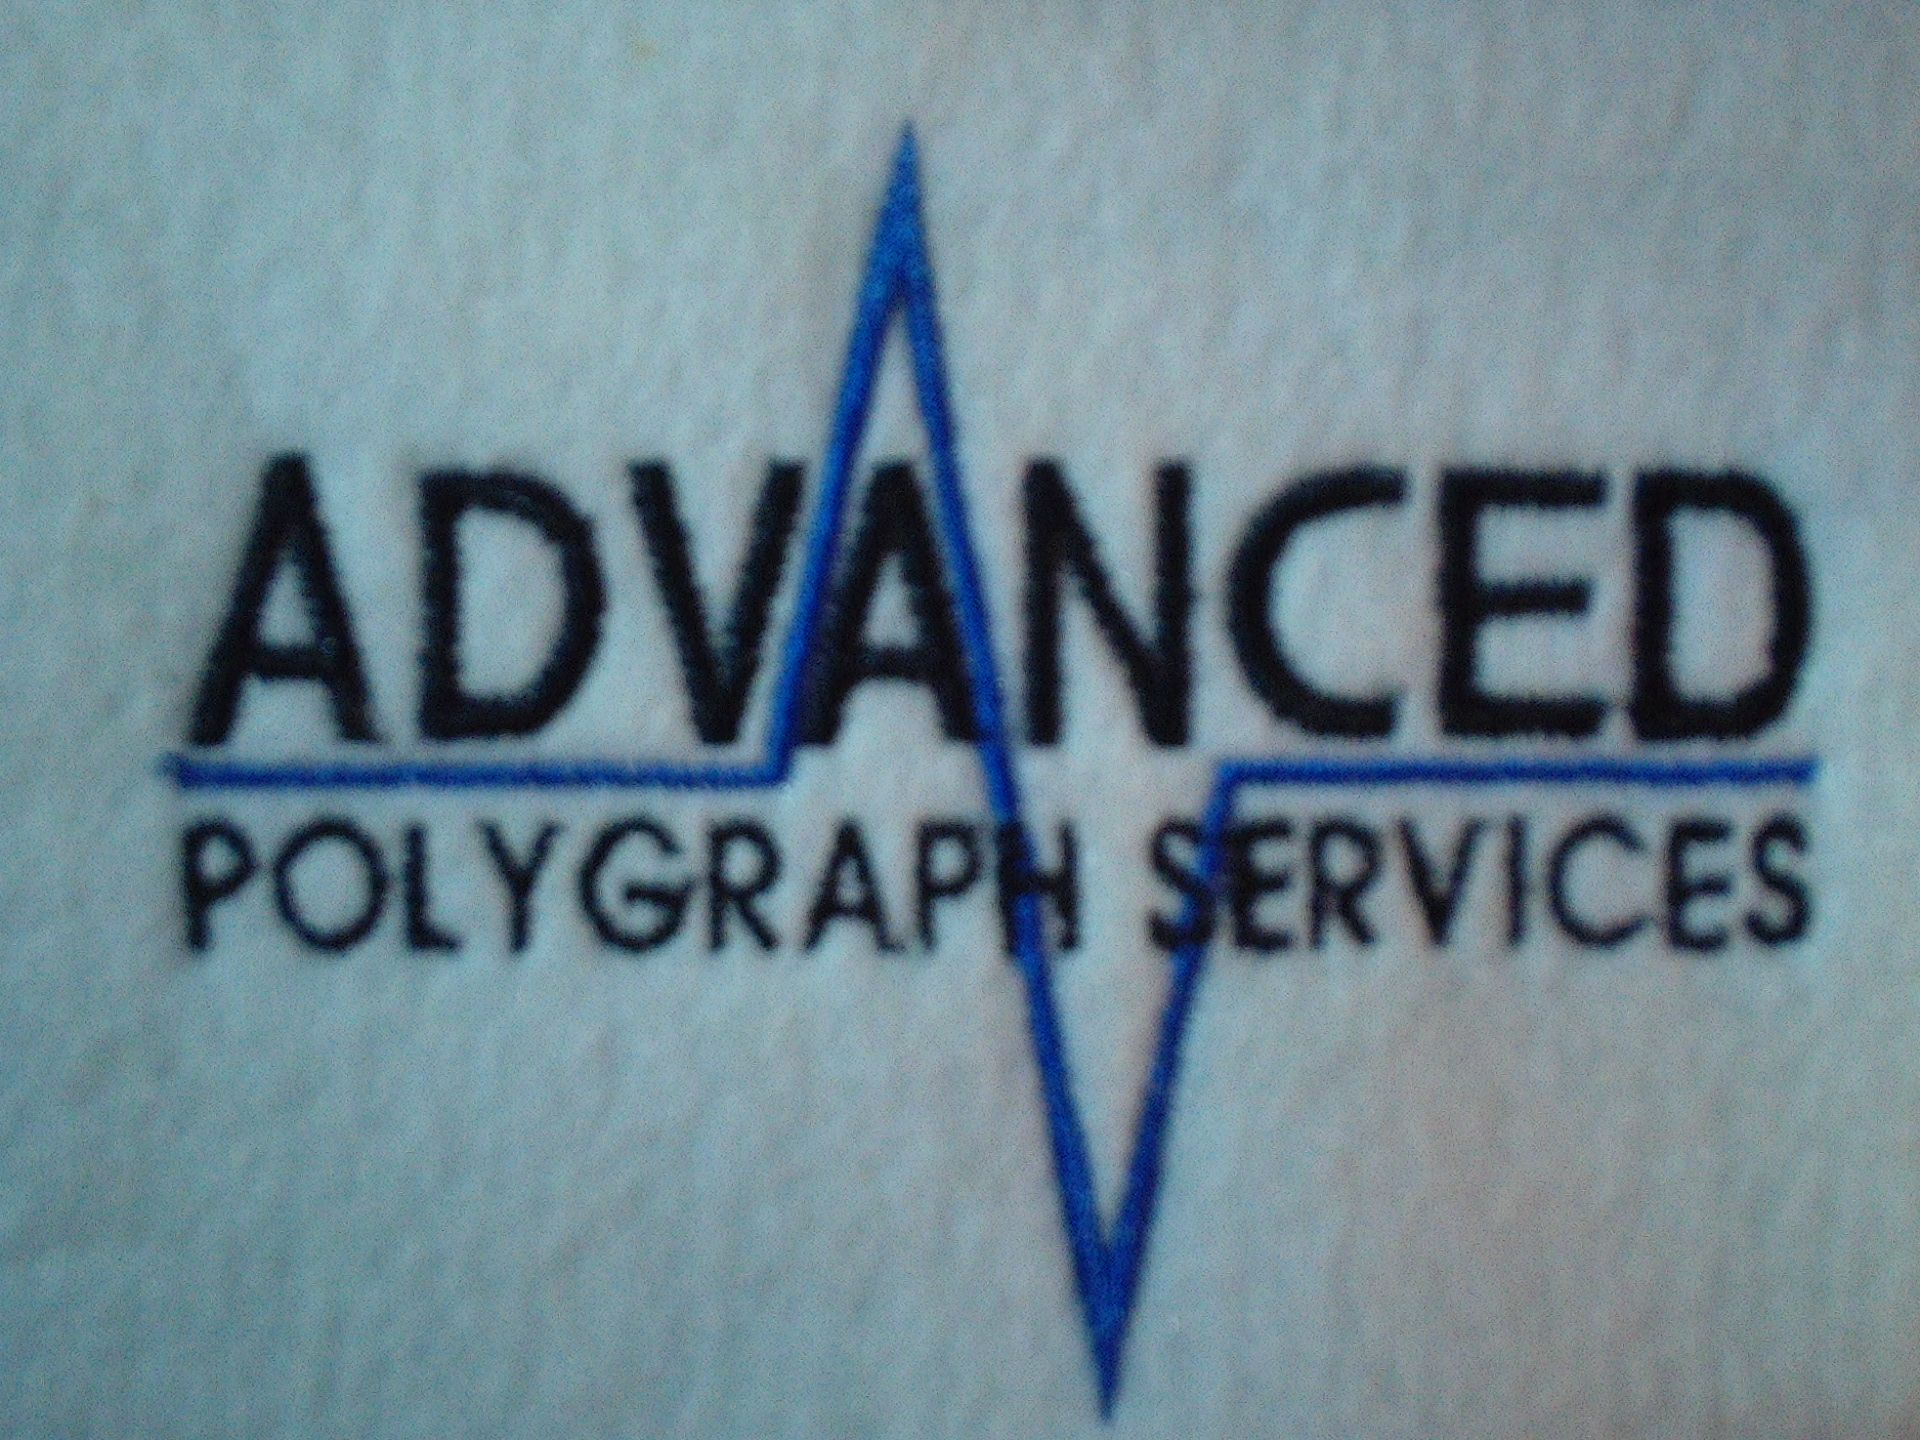 Advanced Polygraph Services